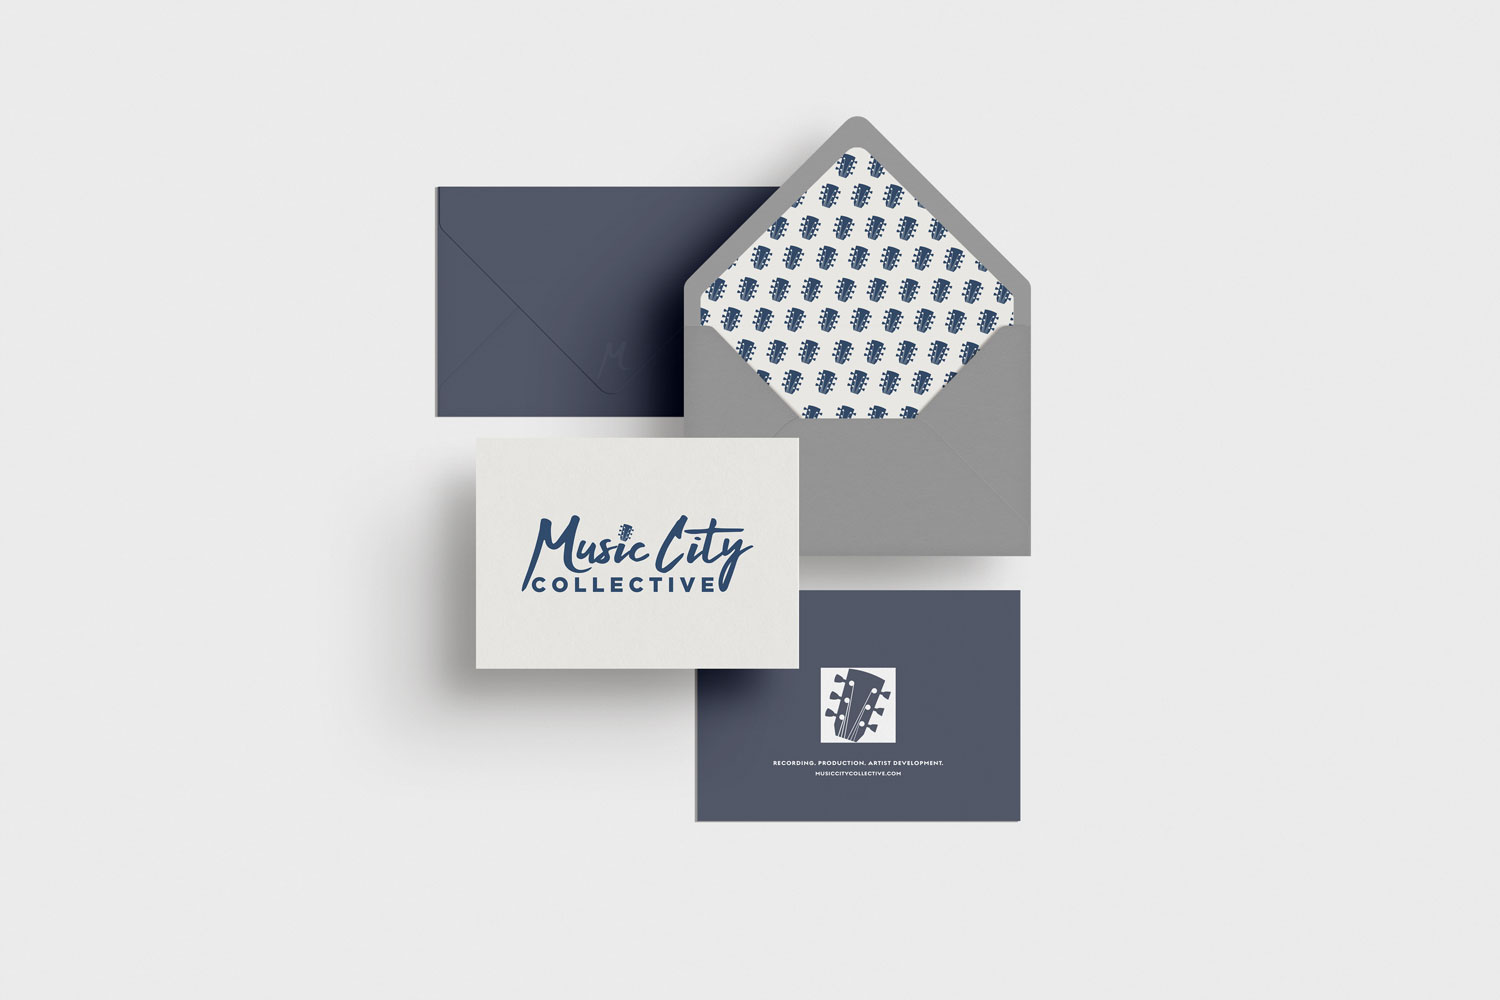 Music_City_Collective_custom_brand_logo_and_wordpress_website_design_by_franklin_lane_creative_portfolio4_